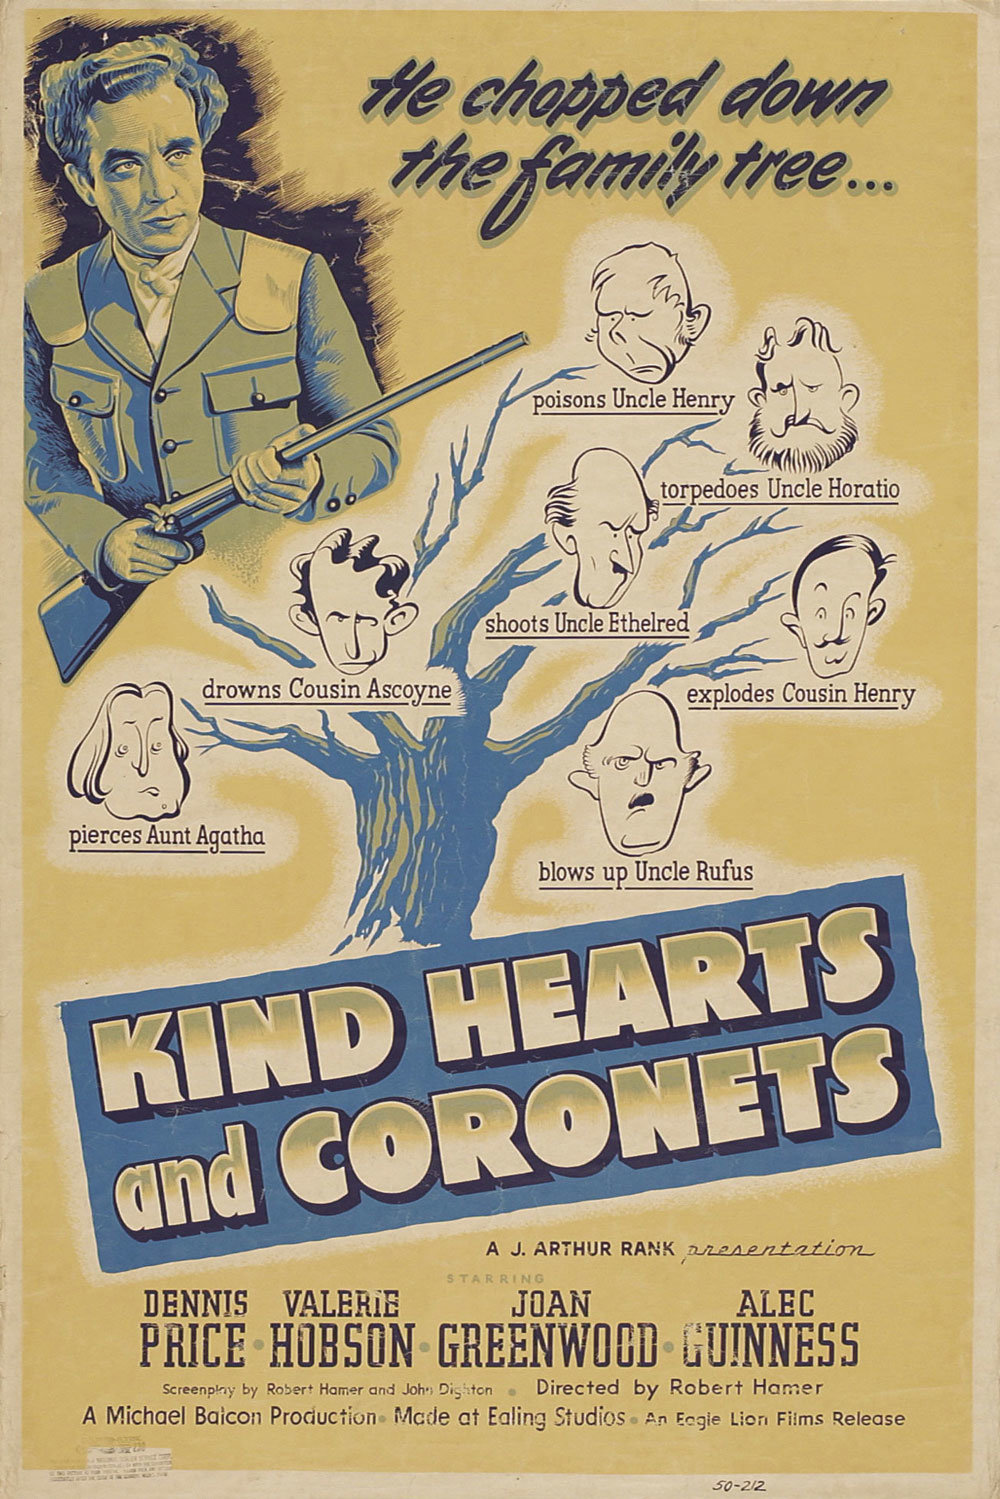 Kind Hearts and Coronets film poster